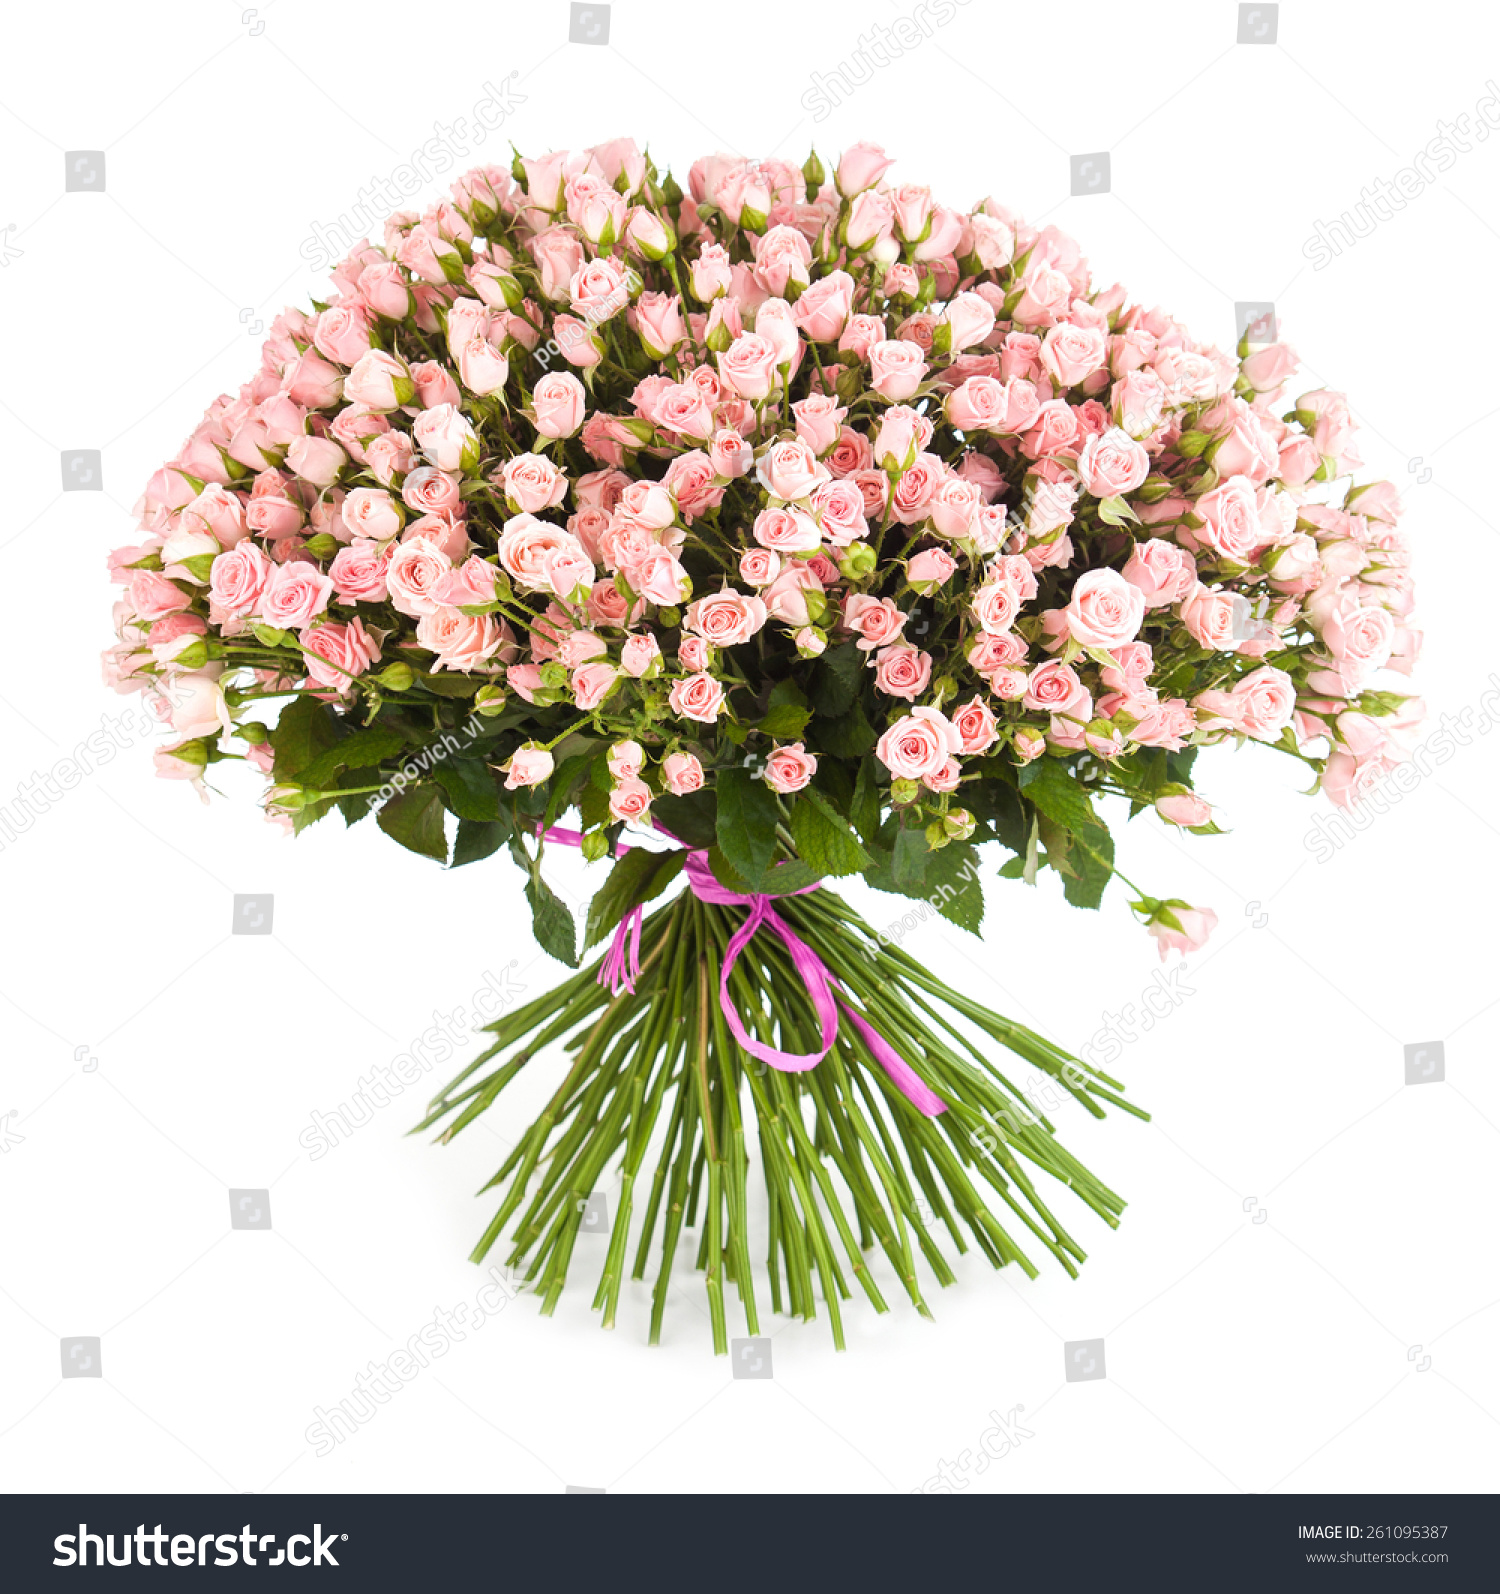 Big flower bouquet bright pink roses stock photo edit now big flower bouquet from bright pink roses isolated on white background closeup izmirmasajfo